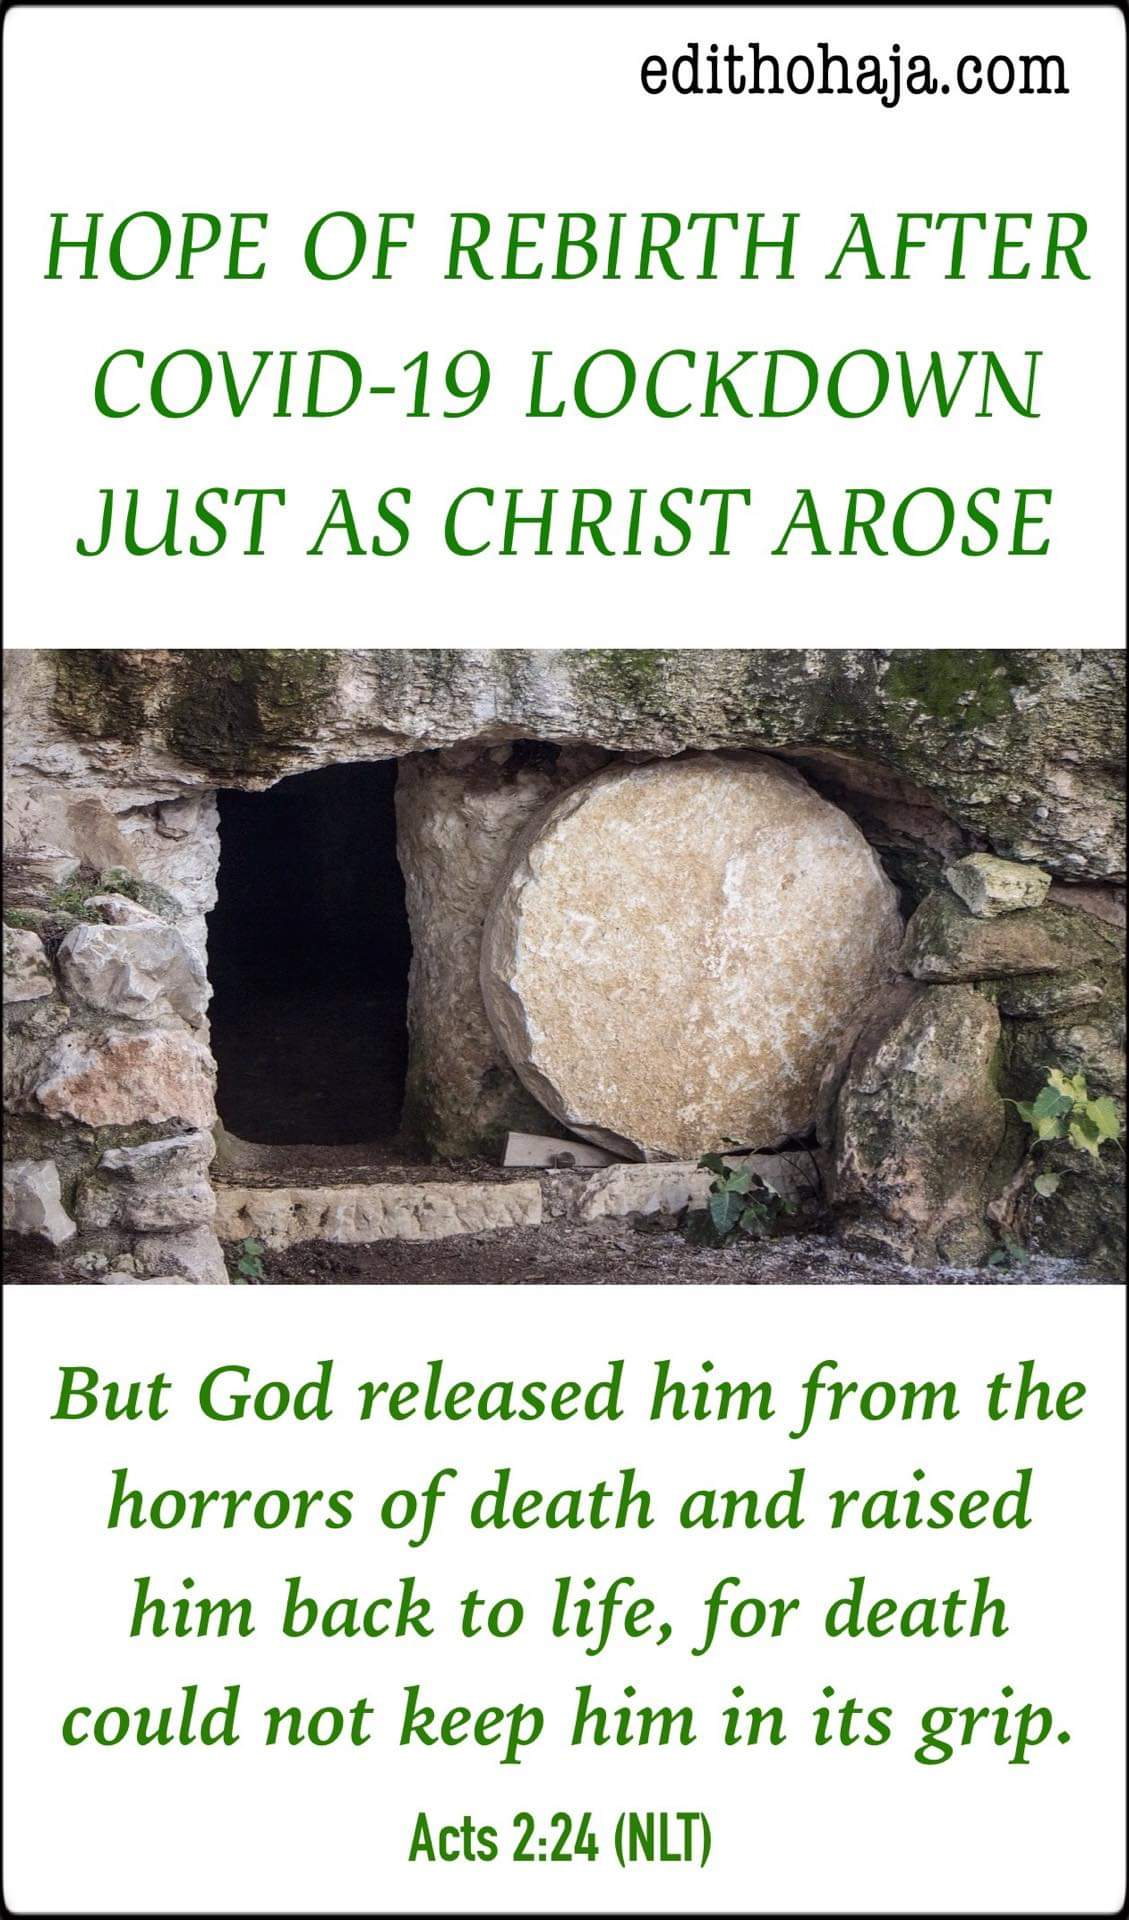 Easter Message: HOPE OF REBIRTH AFTER COVID-19 LOCKDOWN JUST AS CHRIST AROSE